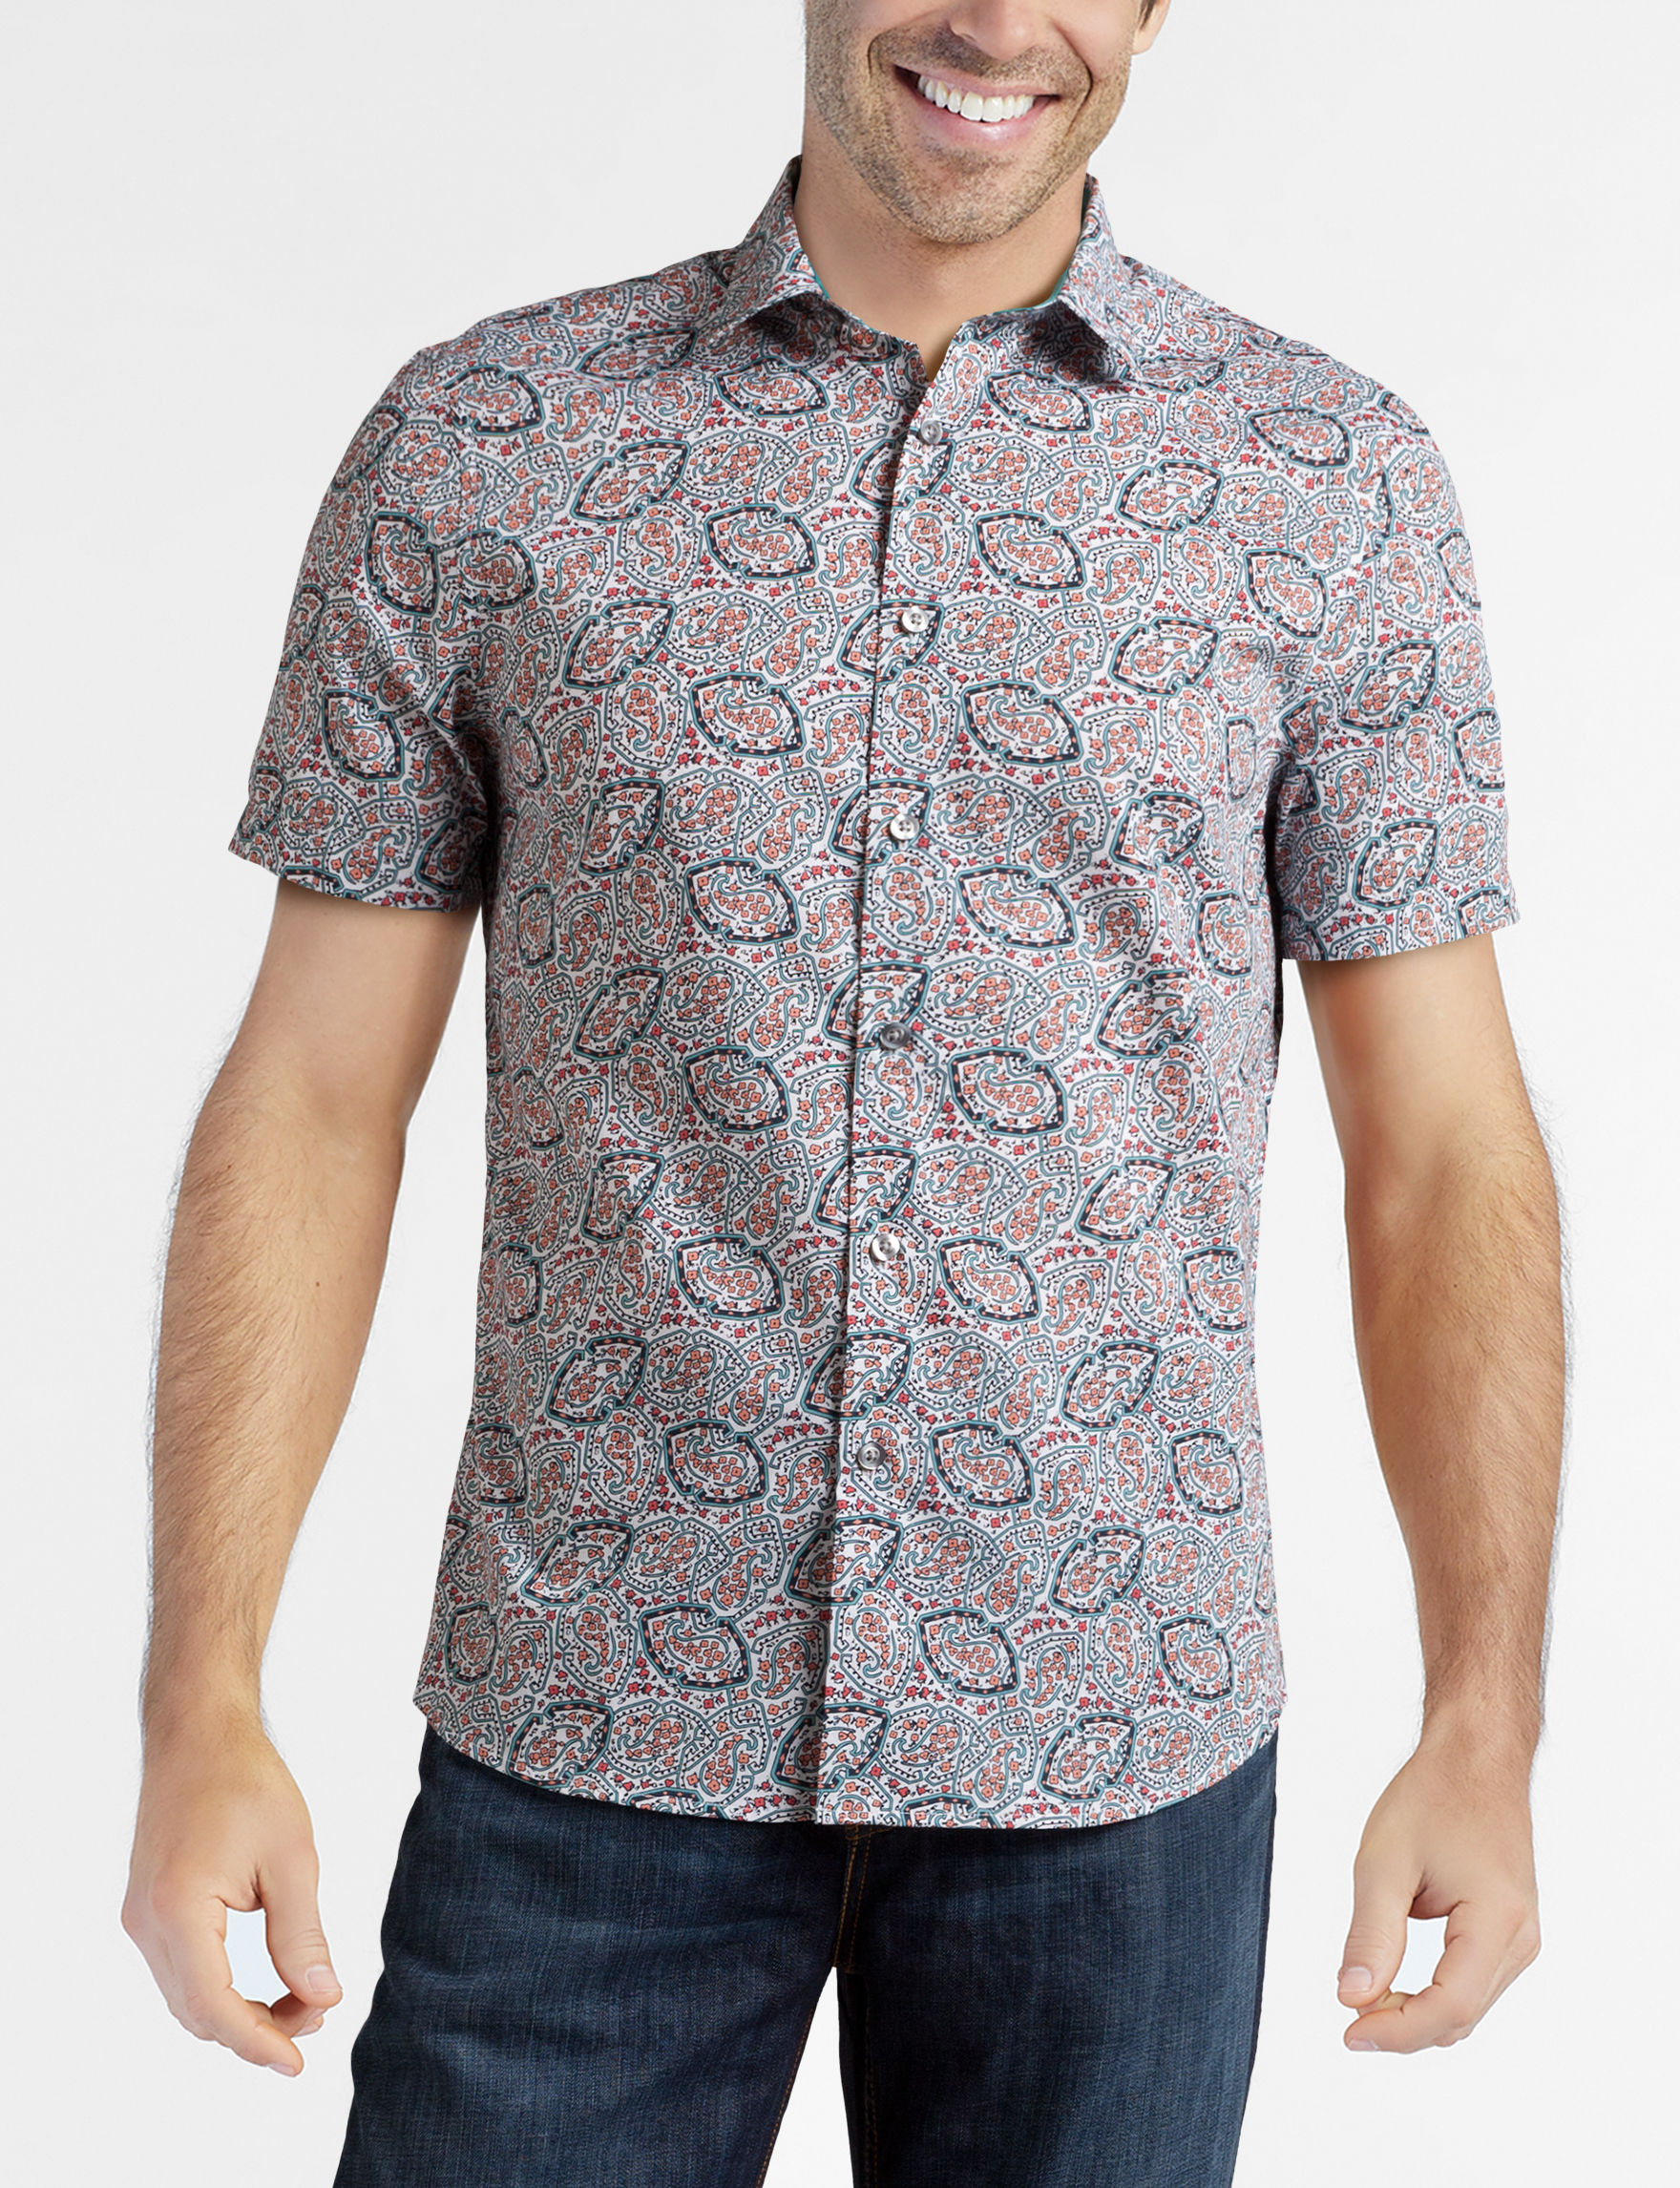 Axist Pink Paisley Casual Button Down Shirts